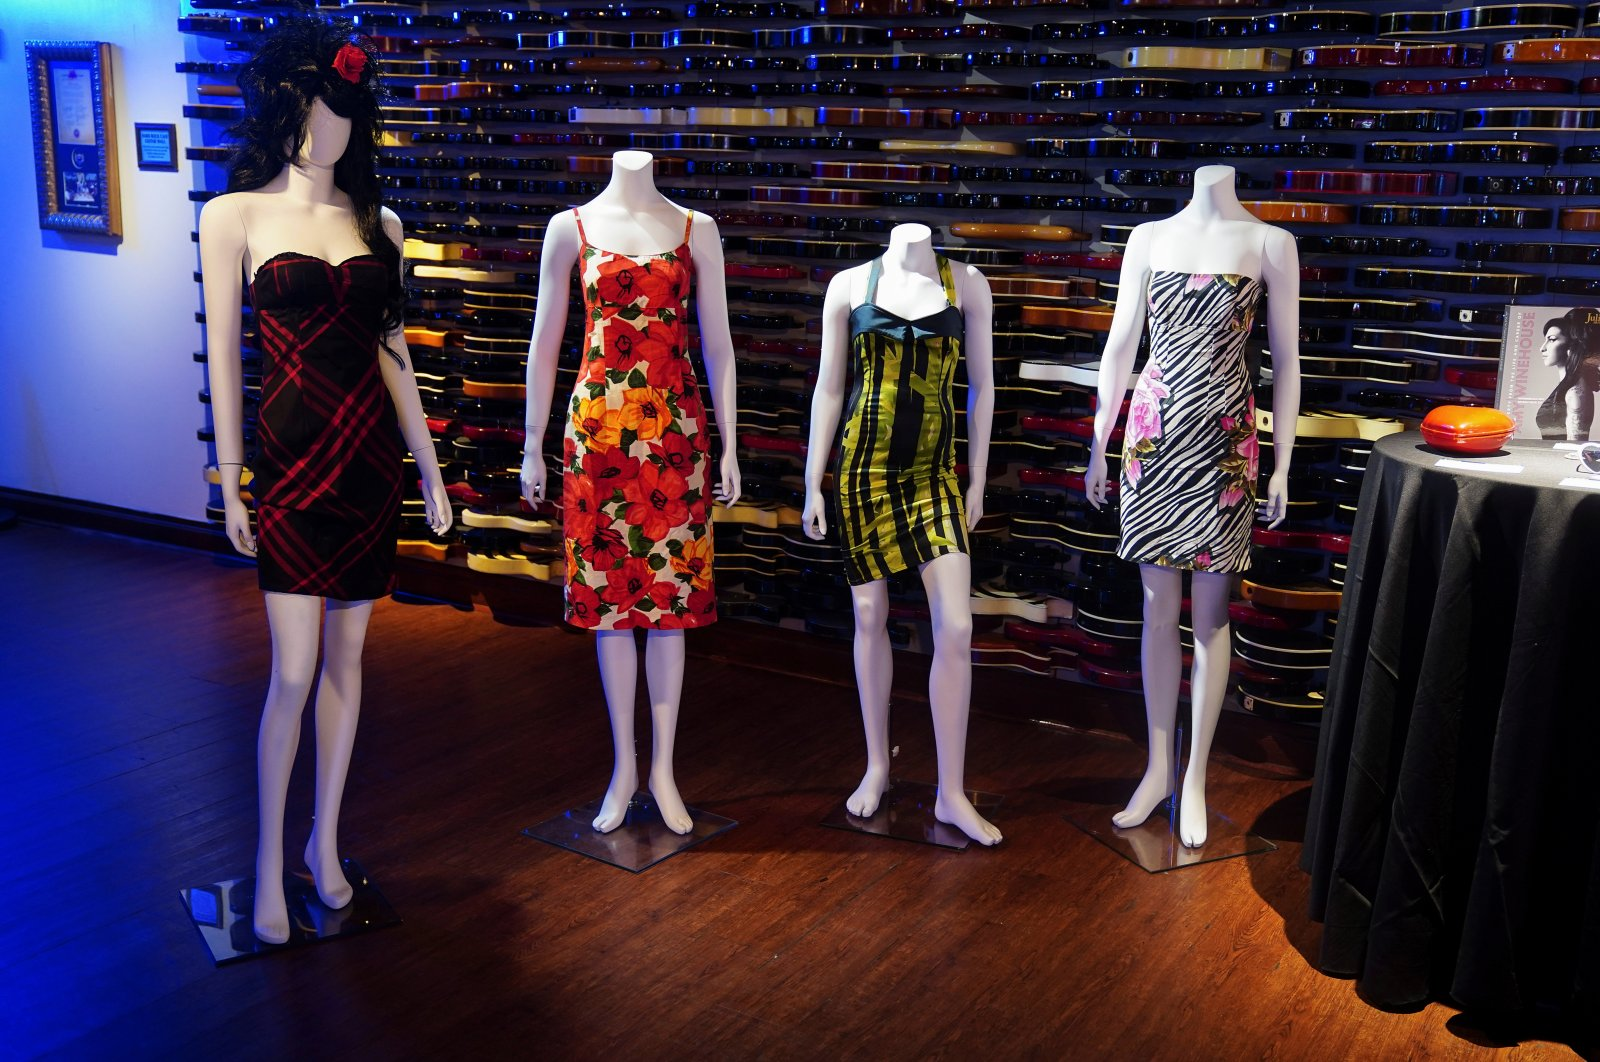 Dresses worn by Amy Winehouse are pictured at a preview for an auction of her personal items on the 10th anniversary of her death in the Manhattan borough of New York City, New York, U.S., Oct. 11, 2021. (REUTERS Photo)